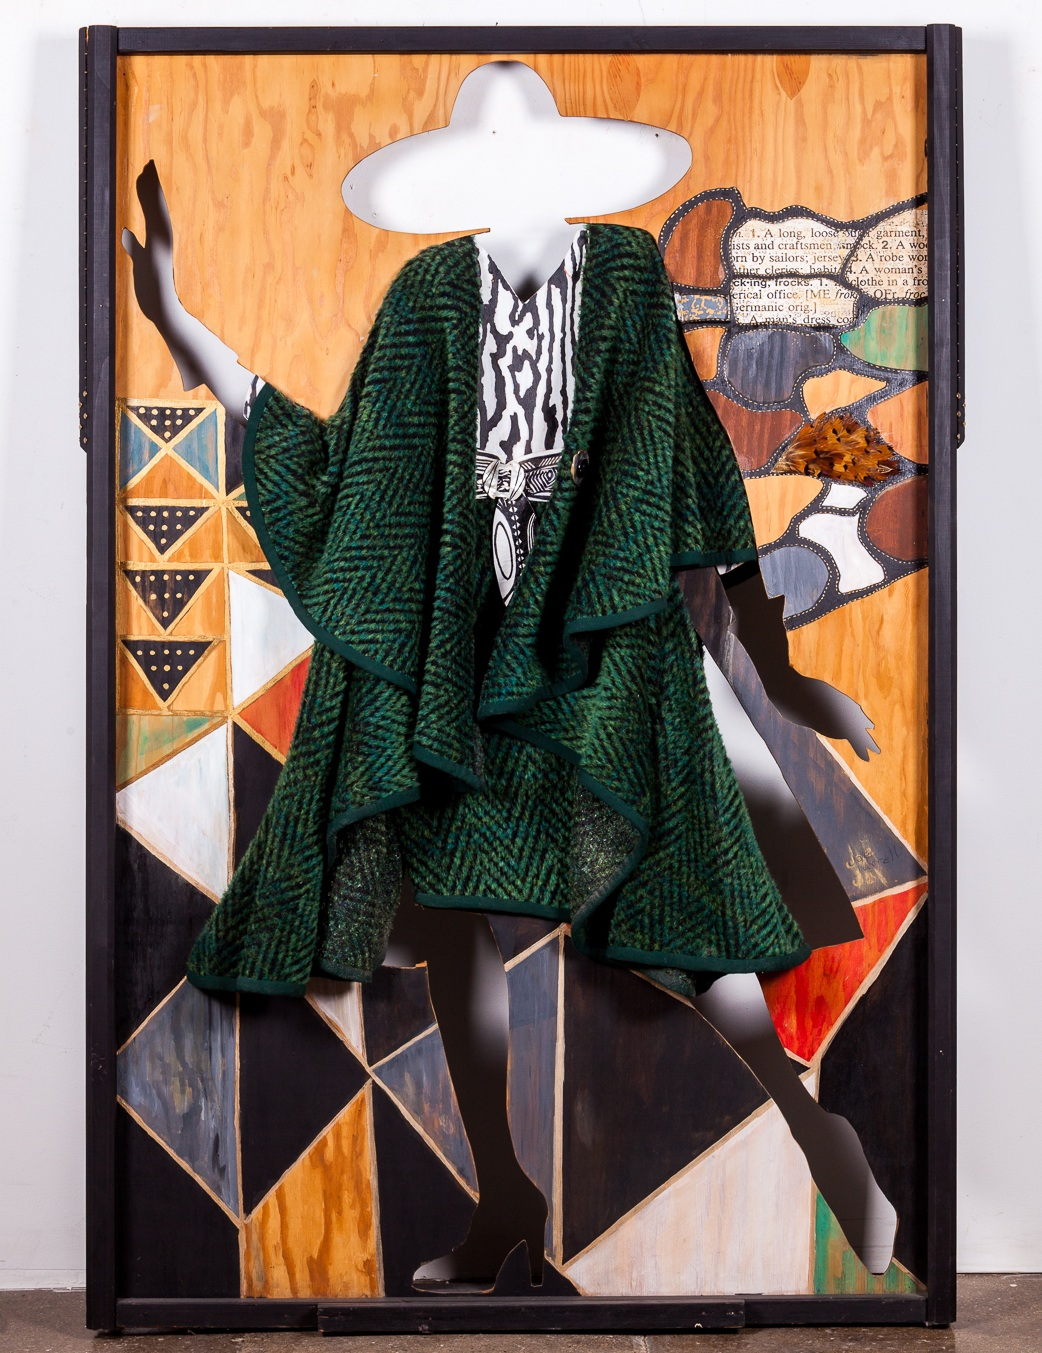 Jae Jarrell, Frock You, 1994, Wool, wood, mixed media 73 x 48 x 6 inches